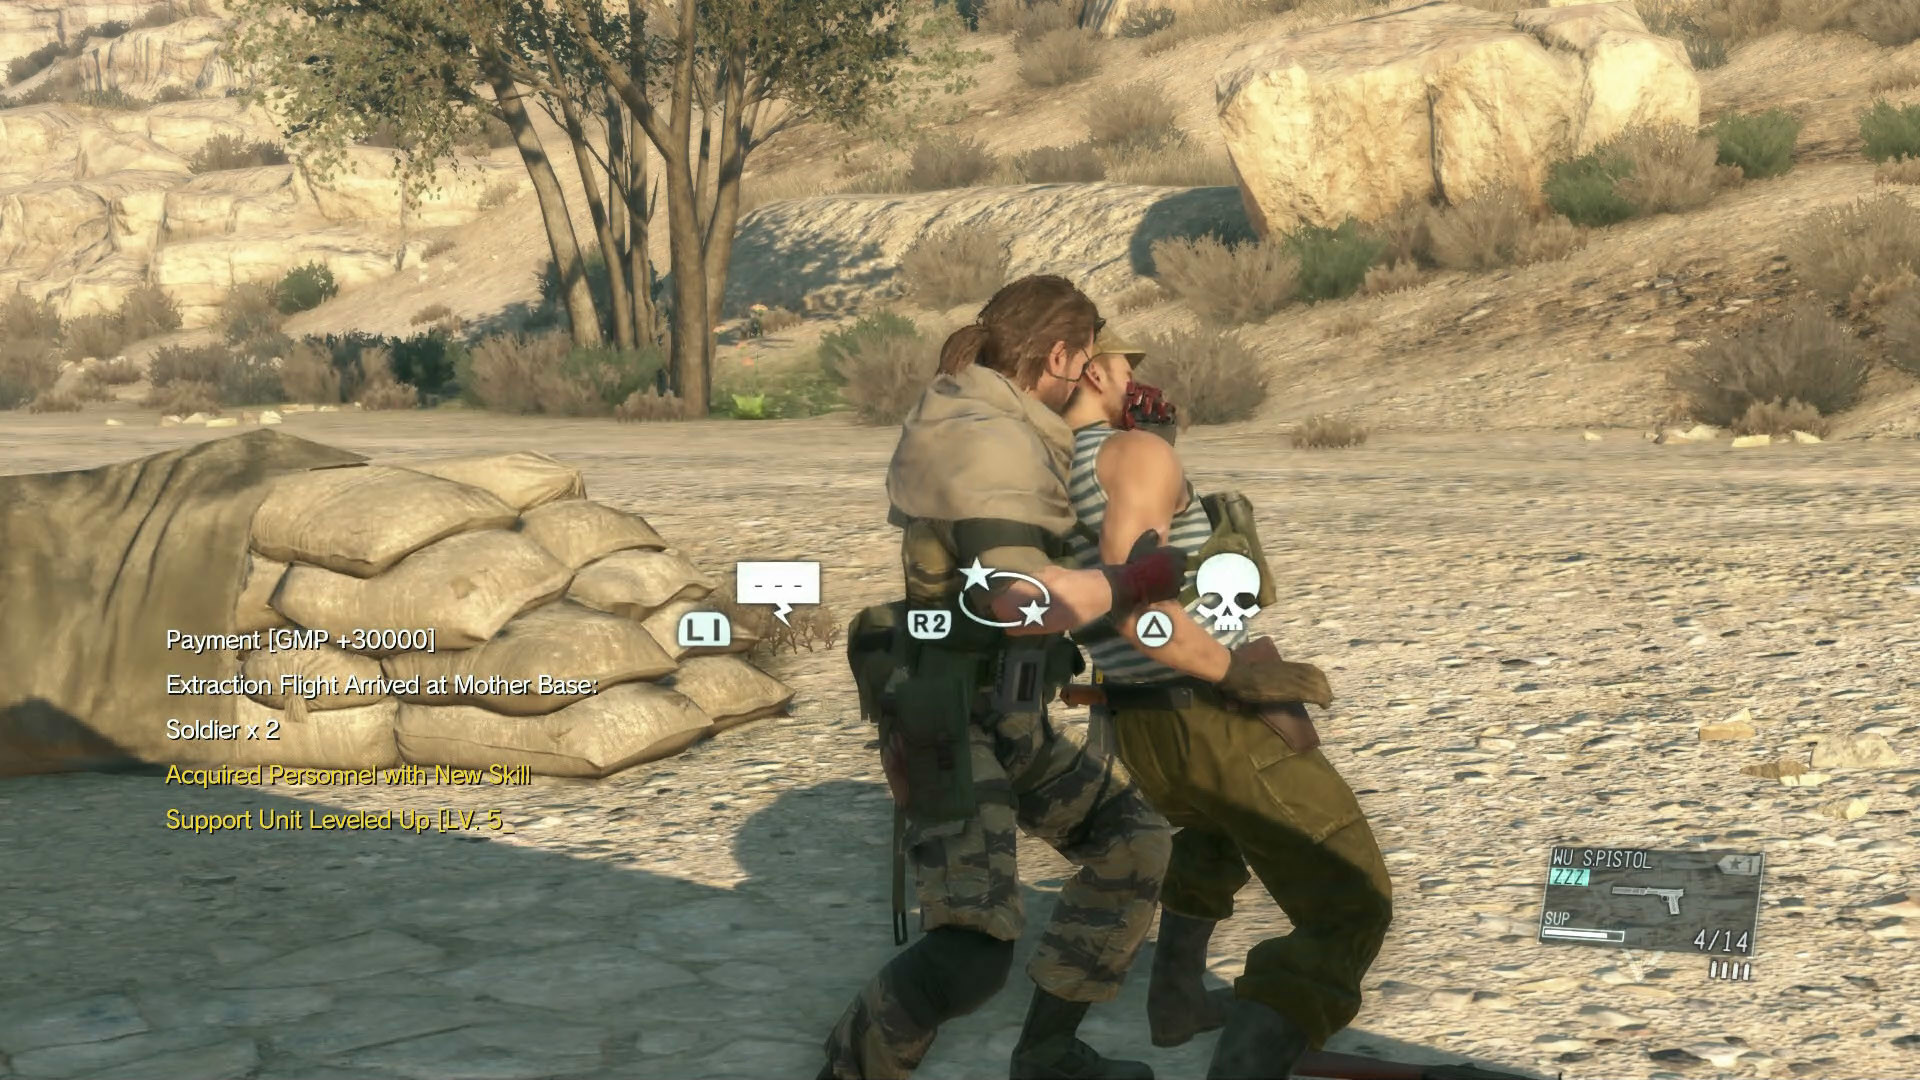 Metal Gear Solid 5: The Phantom Pain – Side Ops 01 Extract Interpreter  (Russian) | VG247